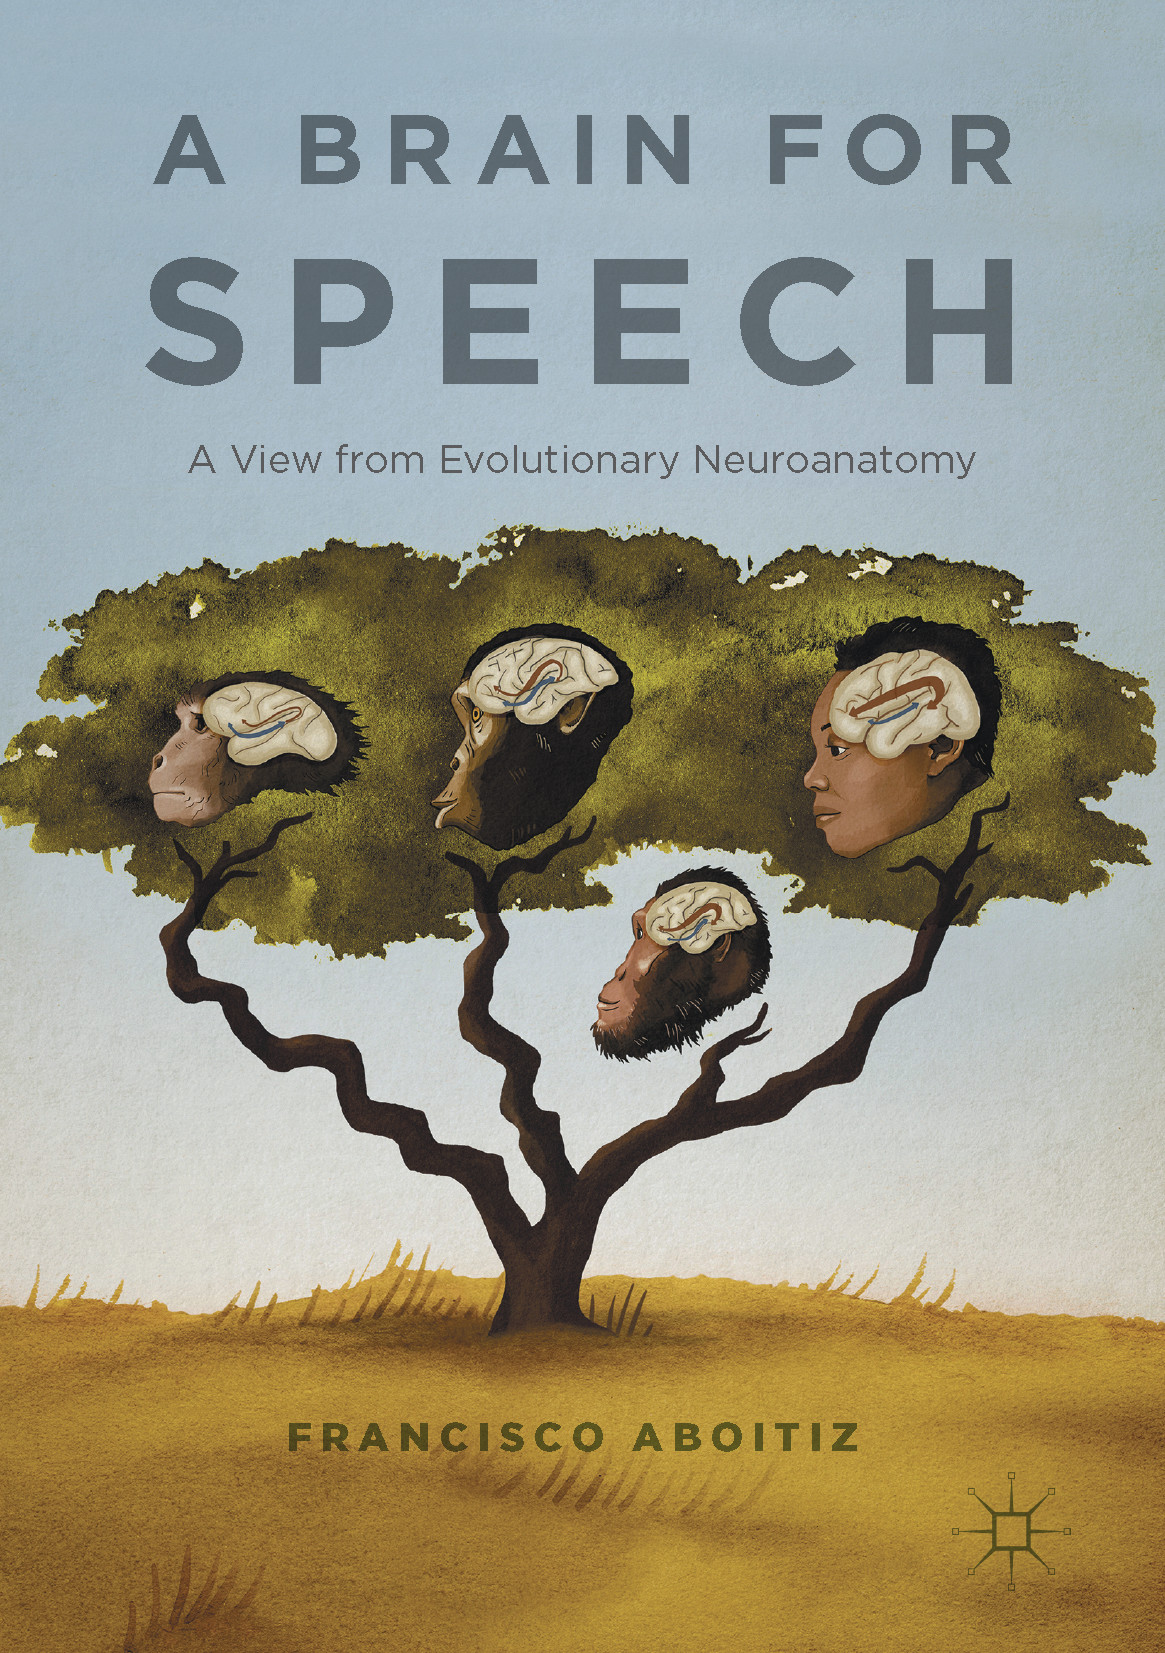 A Brain for Speech